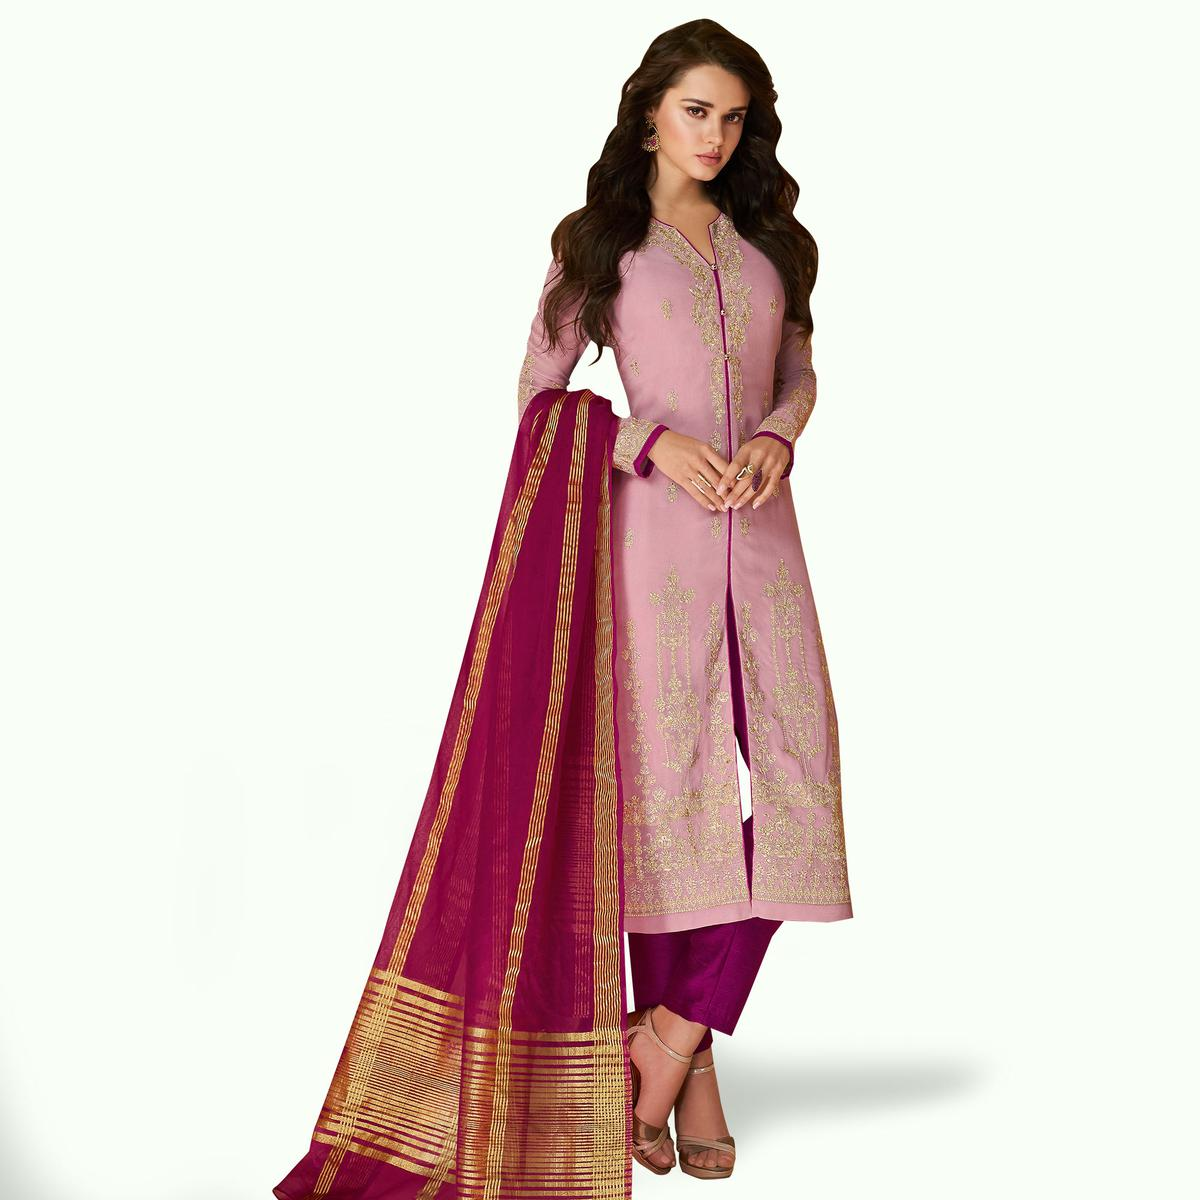 Groovy Pink Colored Partywear Embroidered Georgette Suit